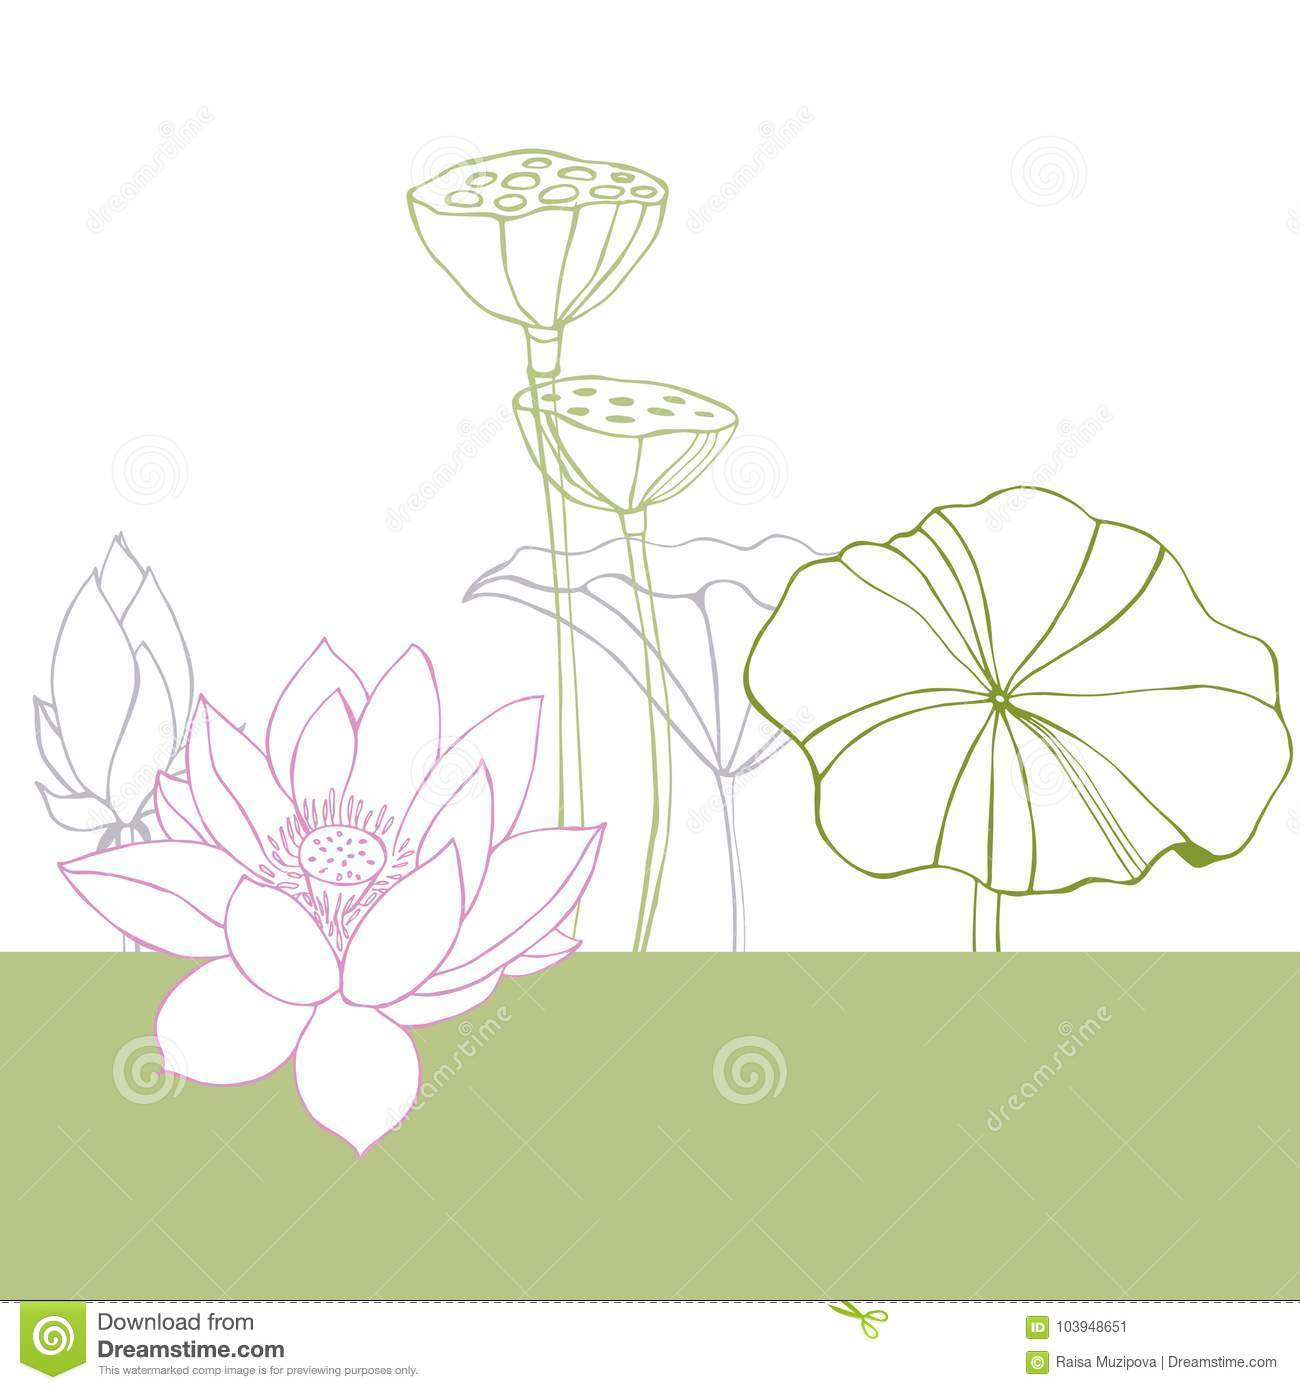 Background With Leaves Flowers And Seed Pods Of Lotus Stock Vector